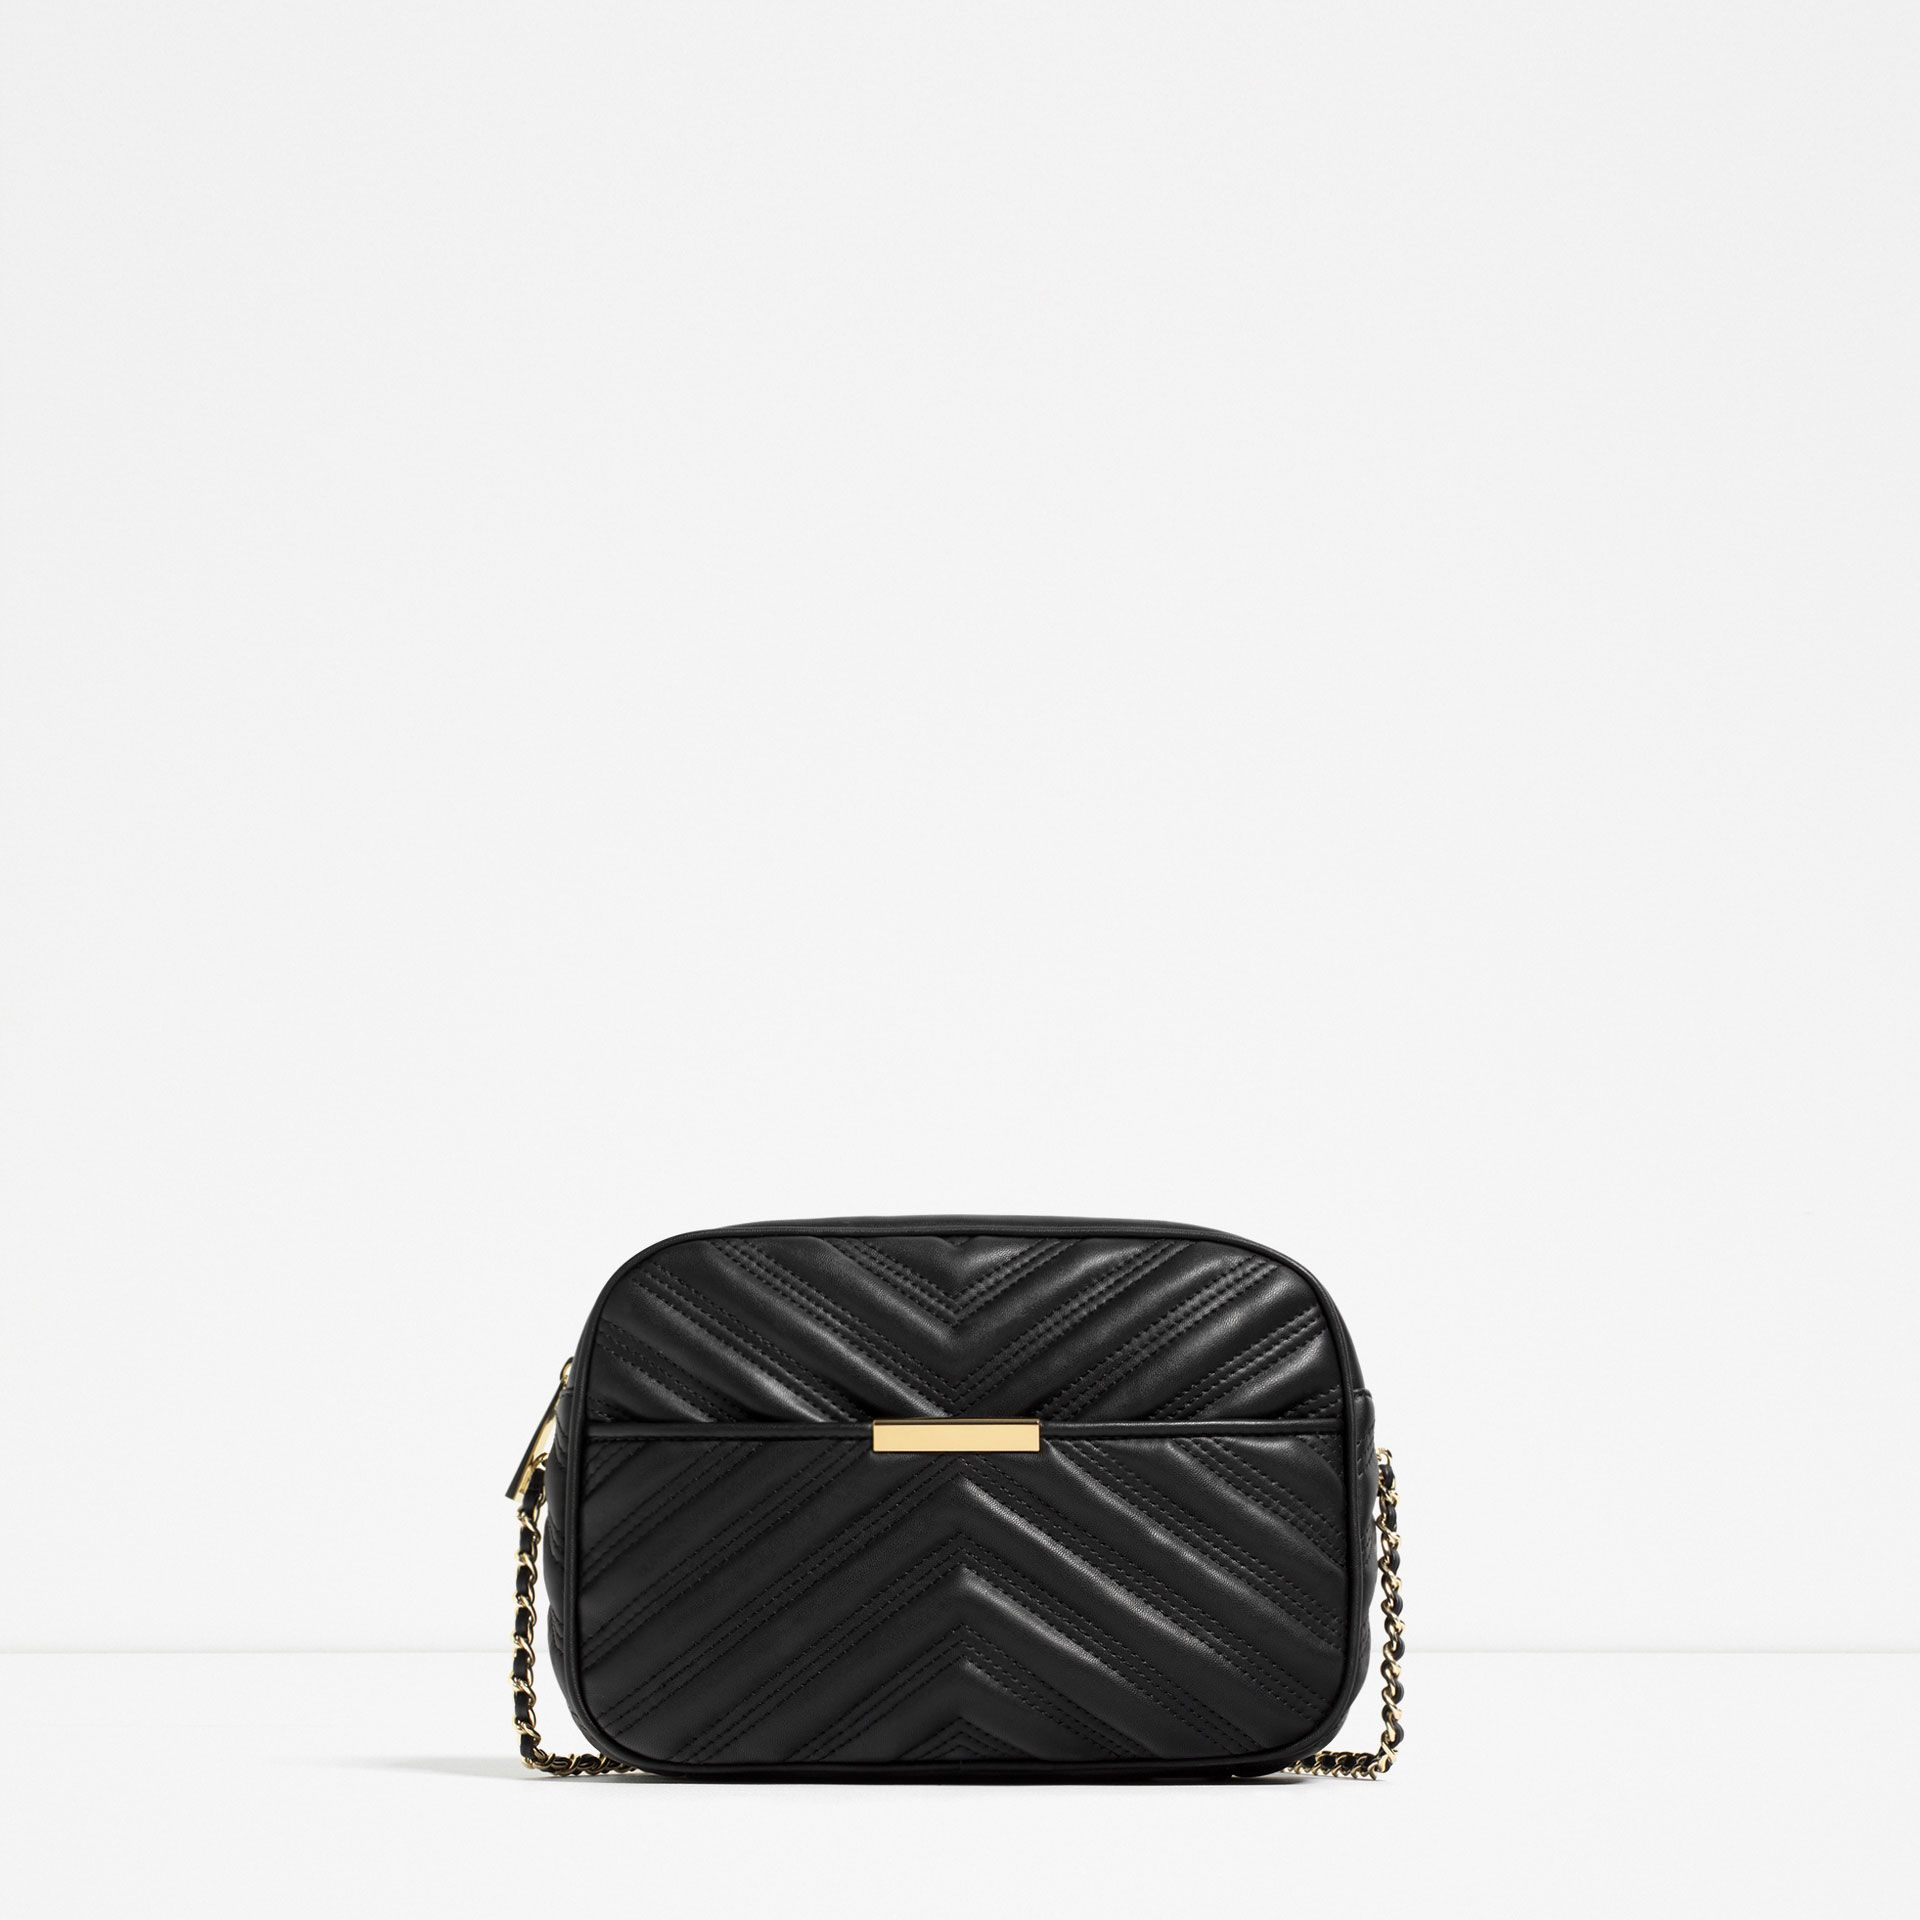 Quilted Cross Body Bag View All Bags Woman Crossbody Bag Black Crossbody Purse Bags